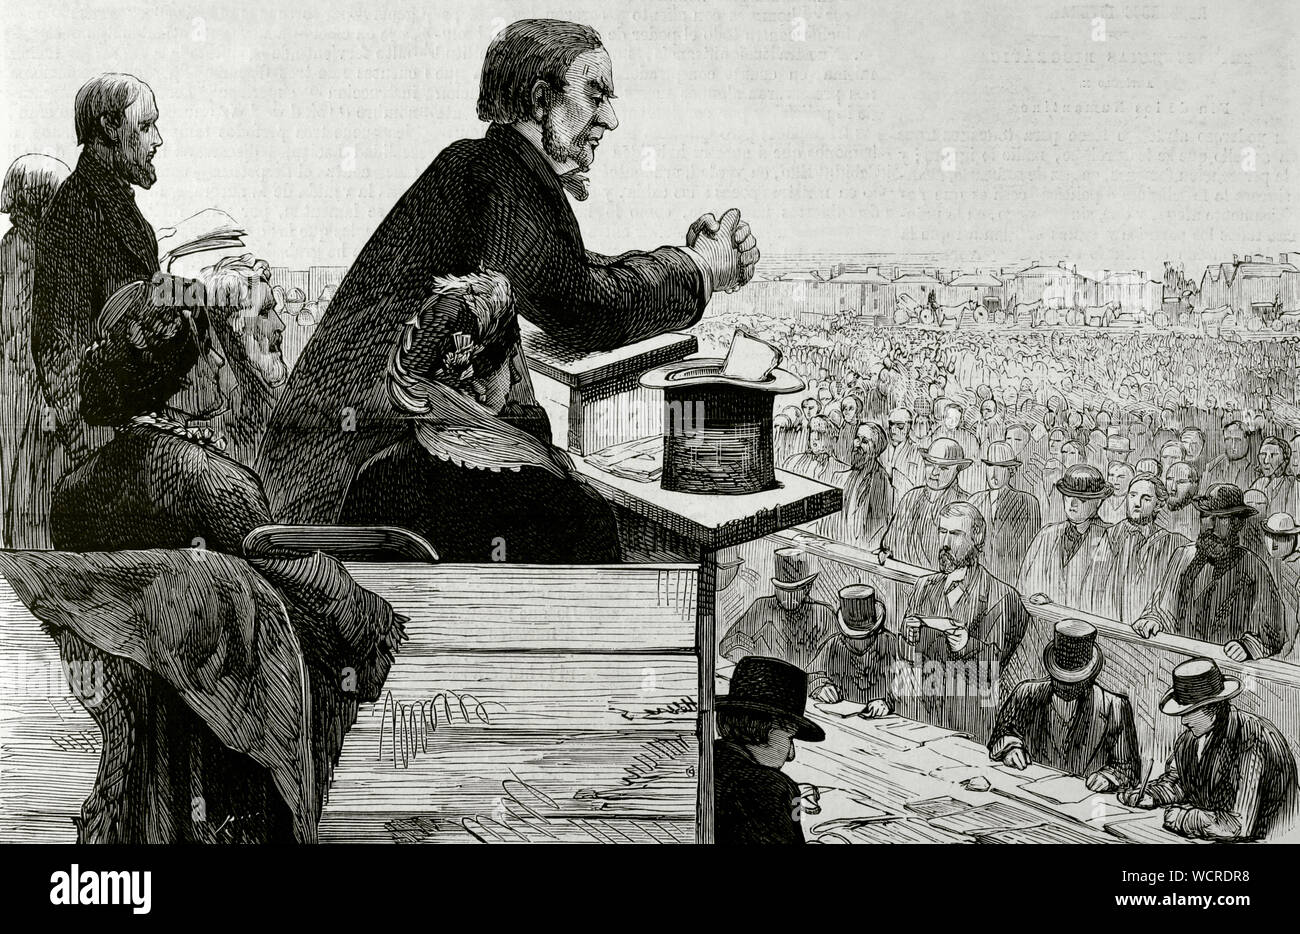 William Gladstone (1809-1898). British statesman and Liberal politician. Meeting held in Greenwich on September 8, 1876 under the presidency of Gladstone, who addressed his voters explaining the atrocities committed by the Turks in Bulgaria. After the act it was agreed to send a message to the Queen and the Government of England, asking for the complete cessation of the Turkish administration in the provinces of Bulgaria, Bosnia and Herzegovina. Engraving. La Ilustracion Española y Americana, September 22, 1876. Stock Photo